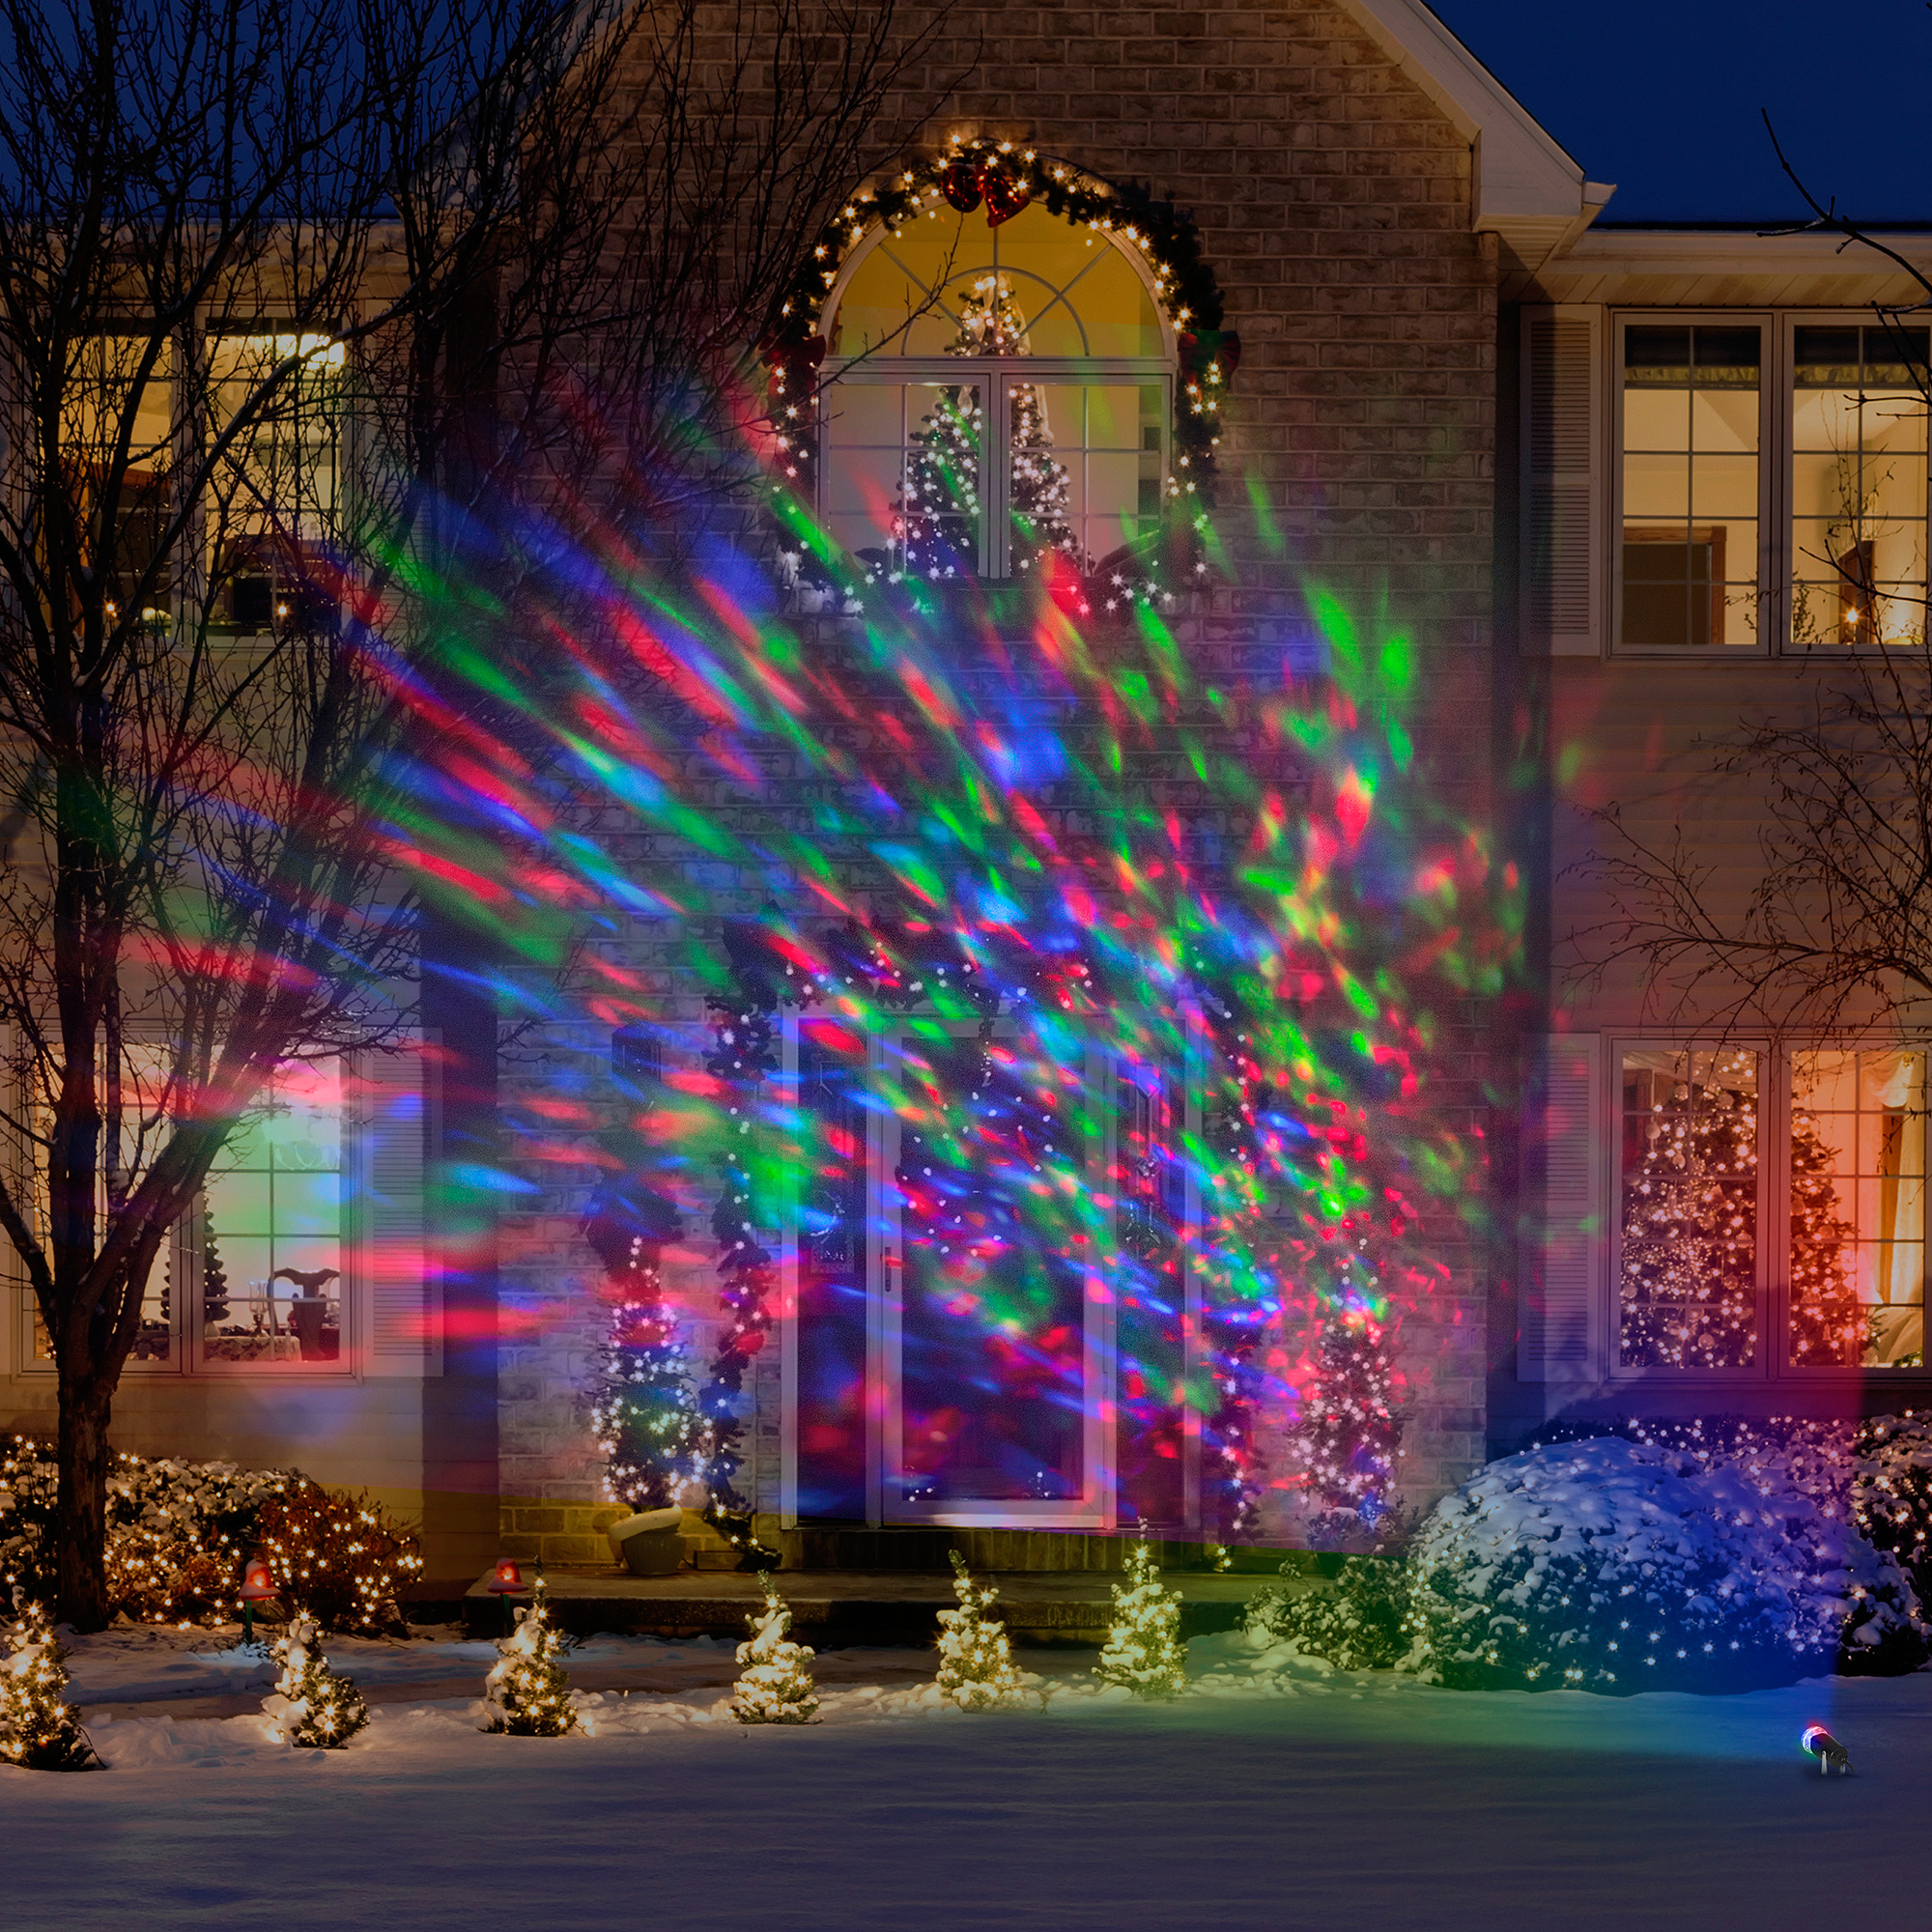 Lightshow Kaleidoscope Multi-Colored Christmas Lights